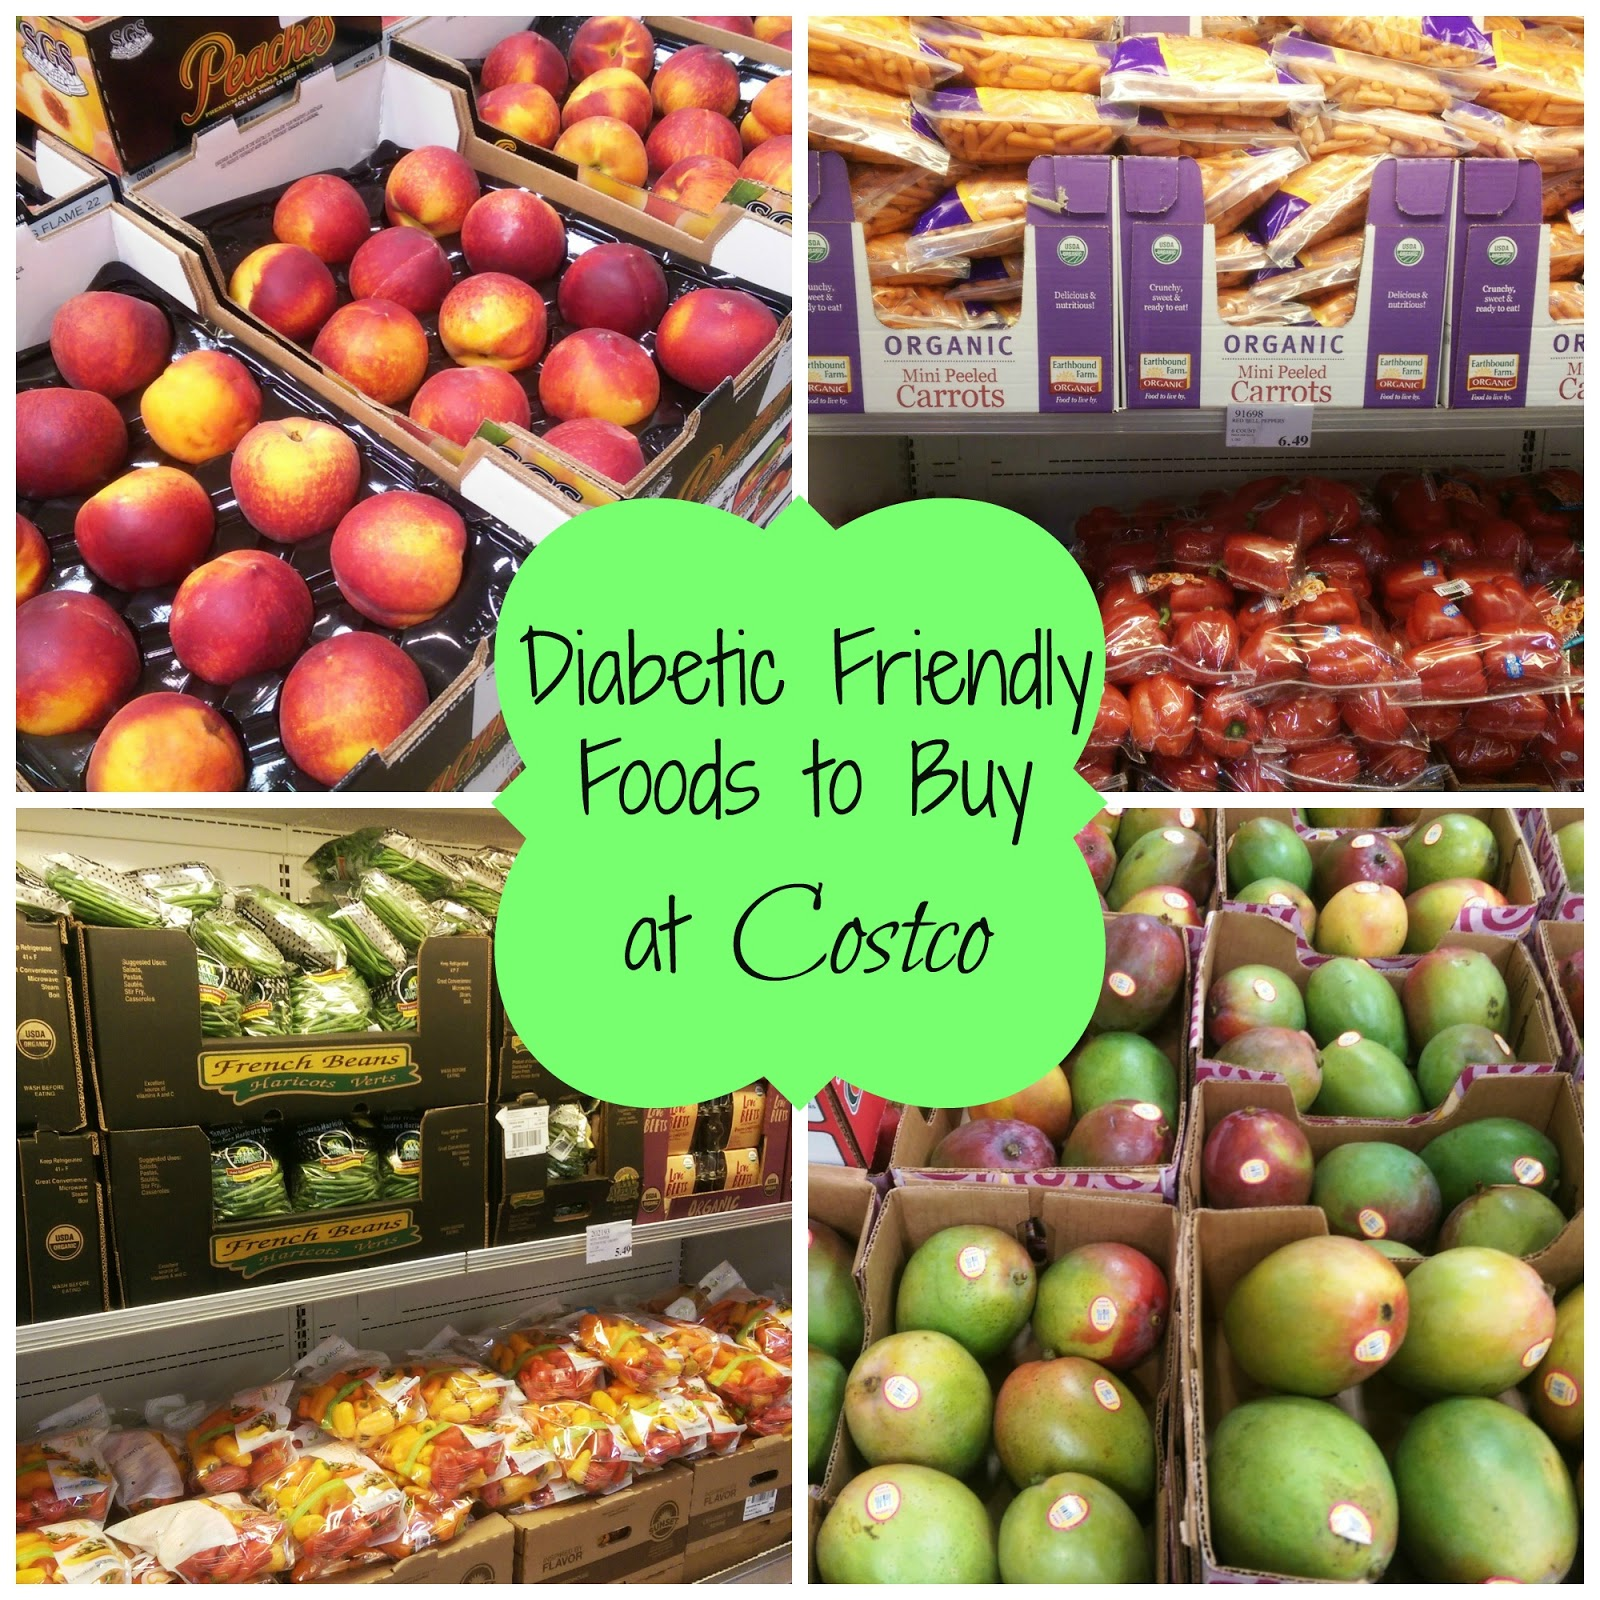 Diabetic Friendly Foods to Buy at Costco | The Nutritionist Reviews